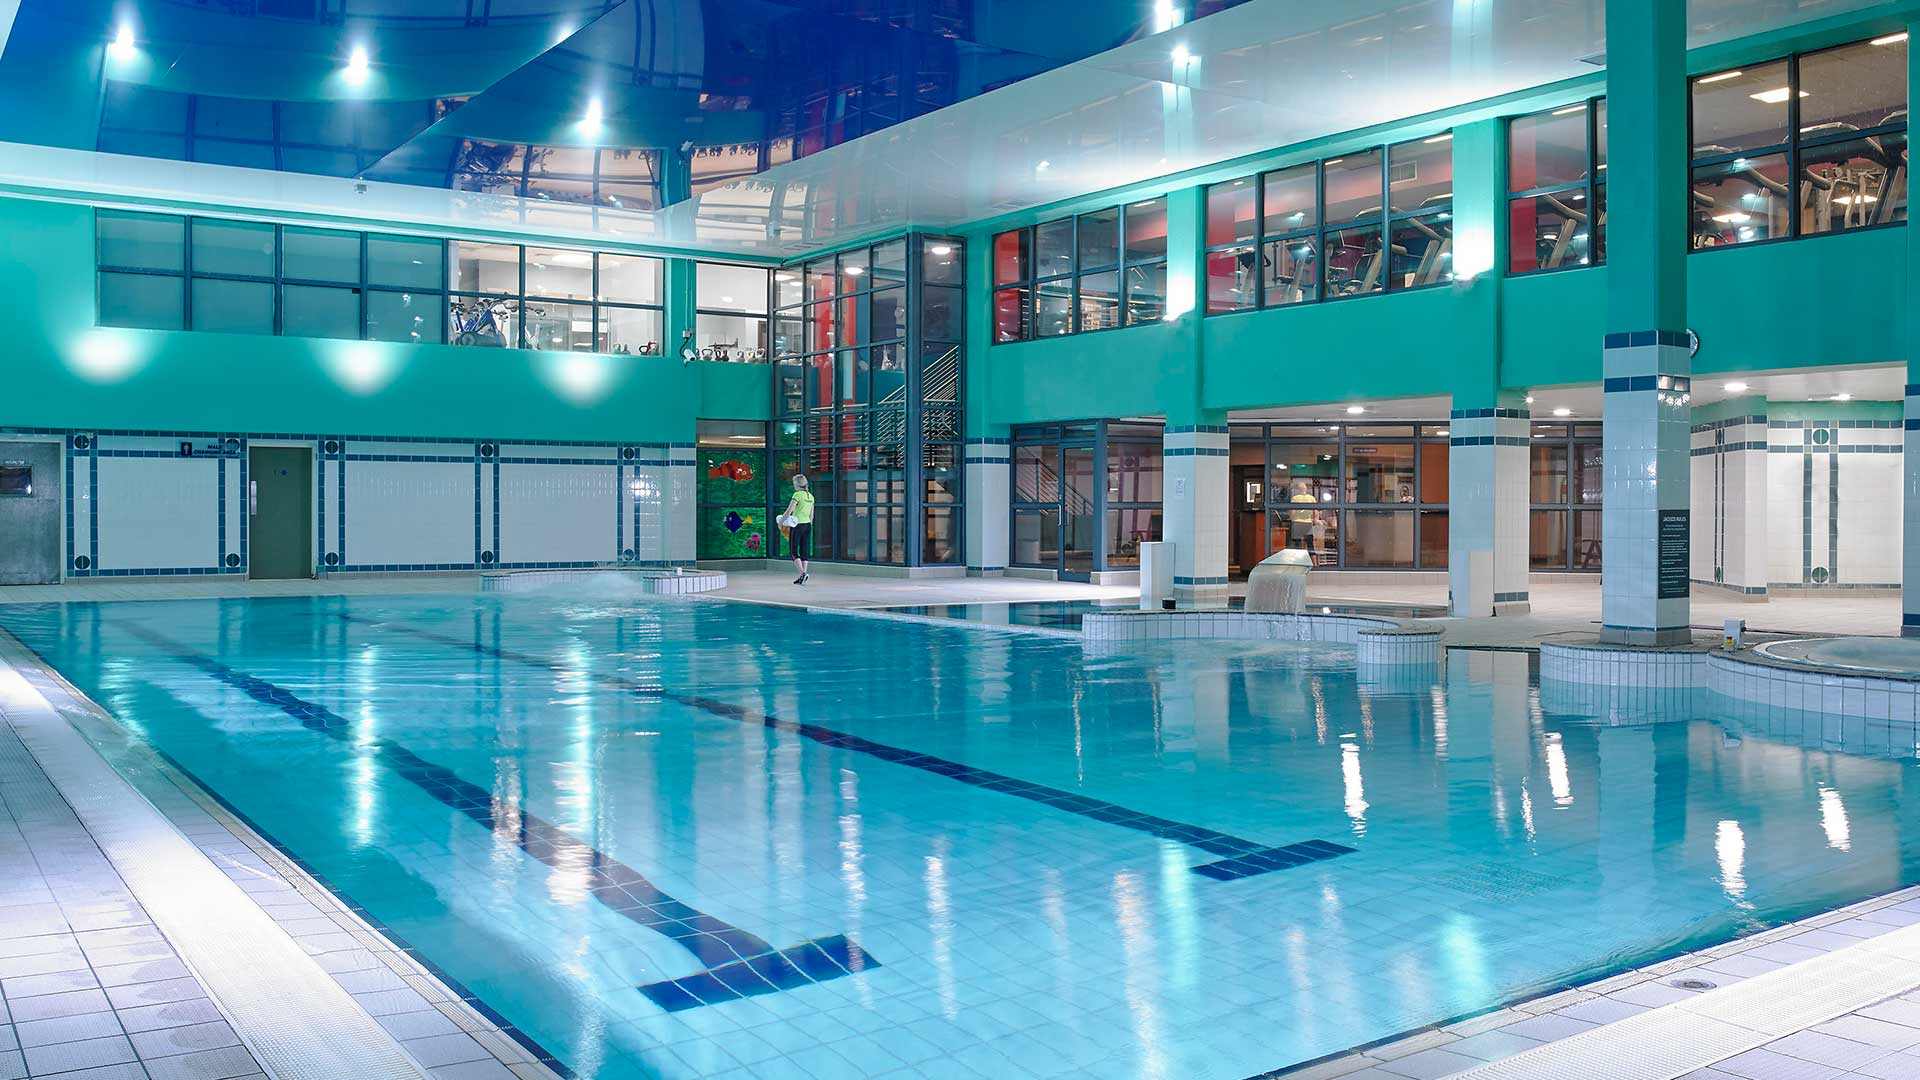 Hotels In Kilkenny With Swimming Pool Gym Kilkenny